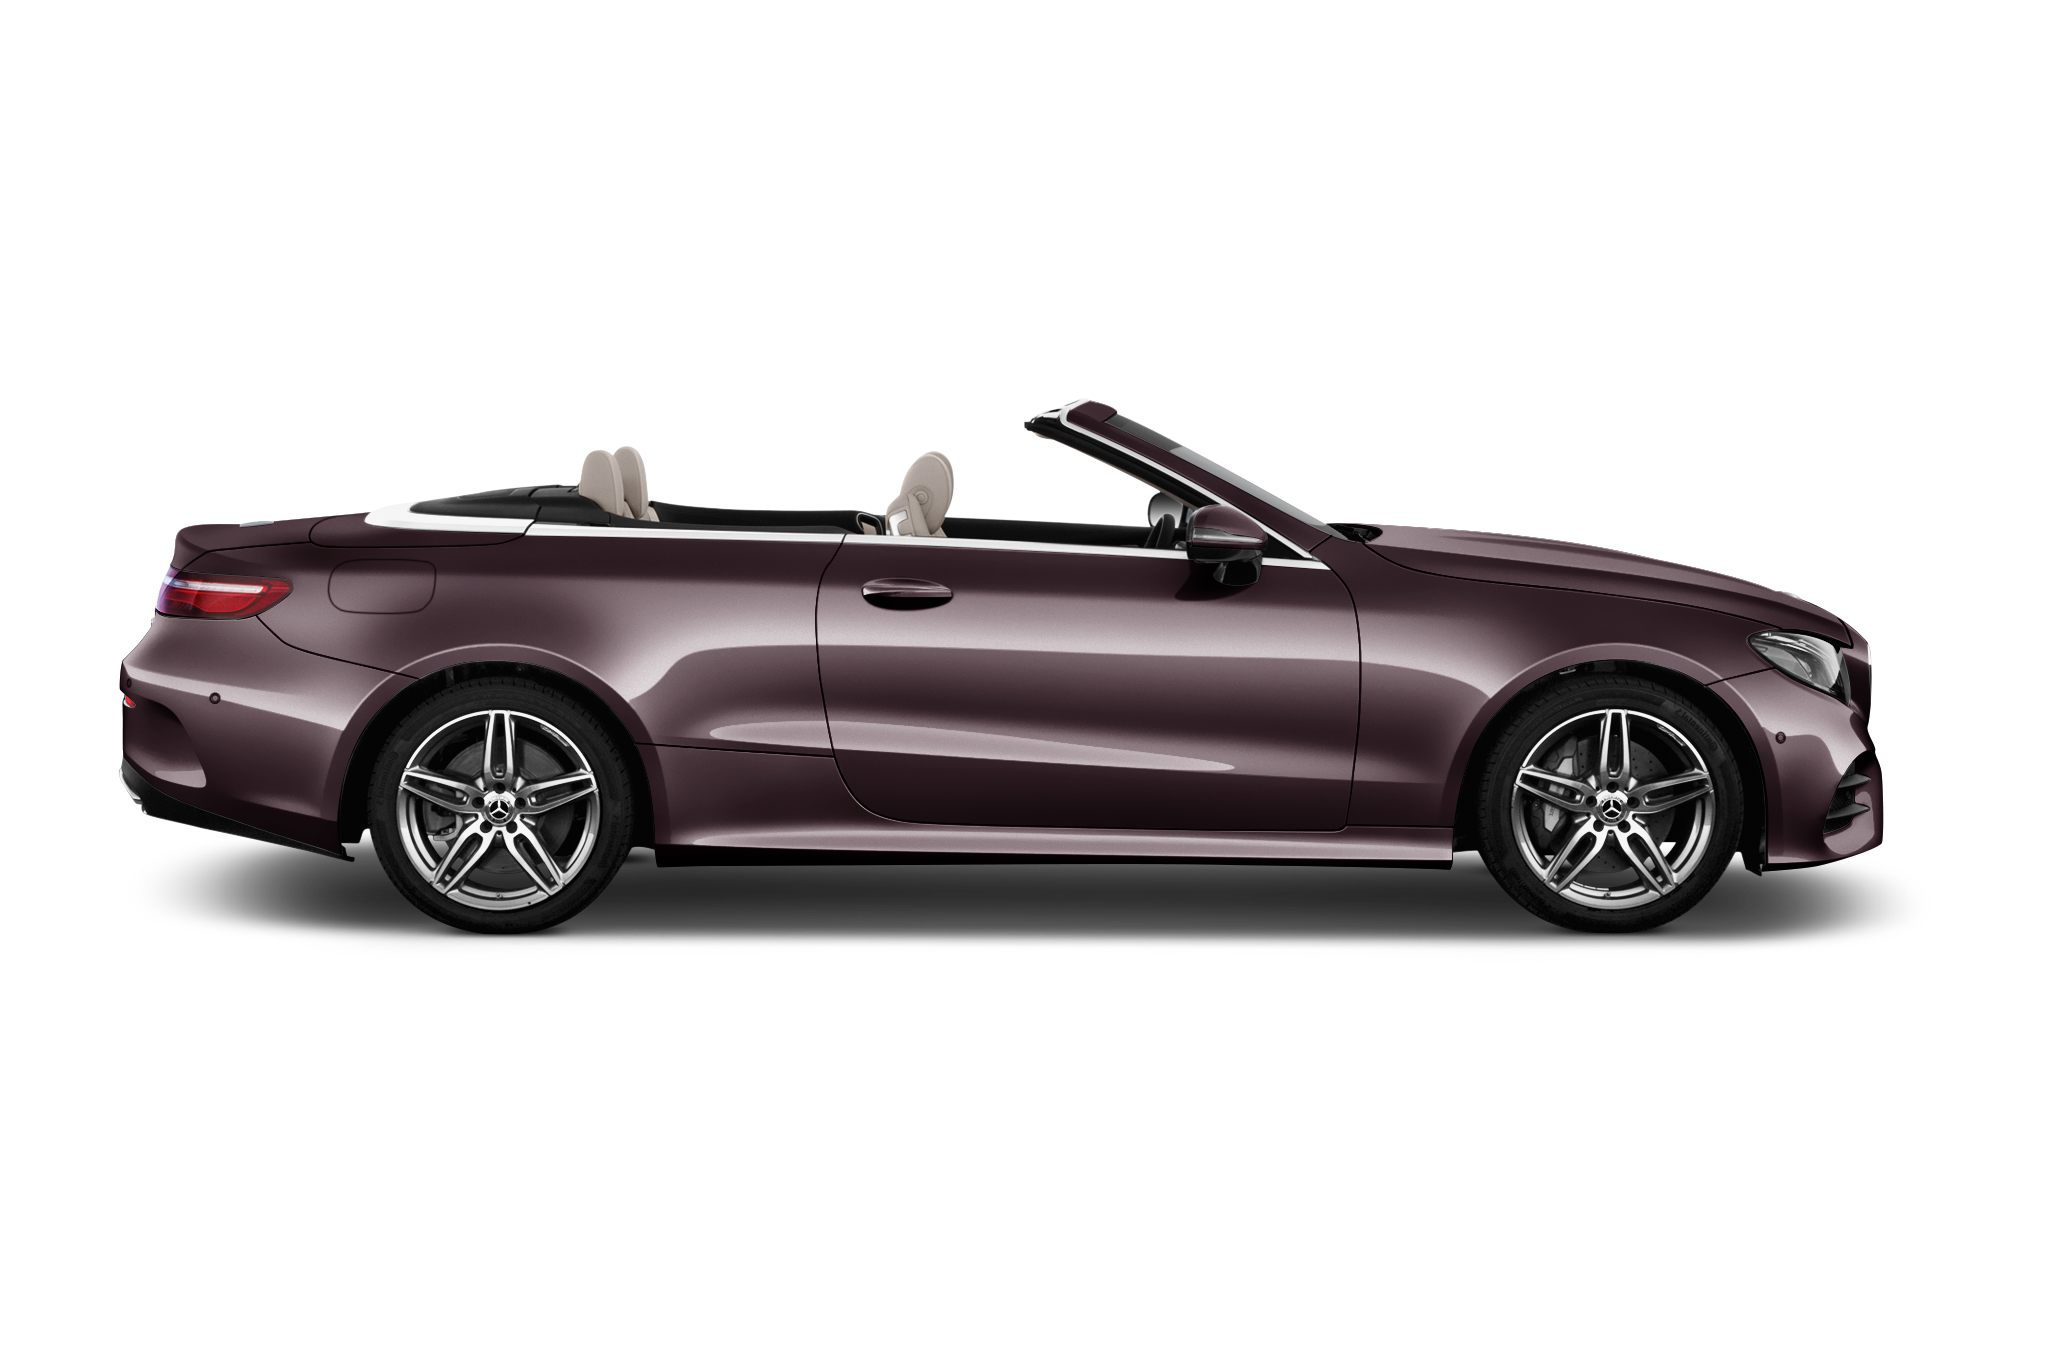 Similar to the Mercedes-Benz E Class Cabriolet